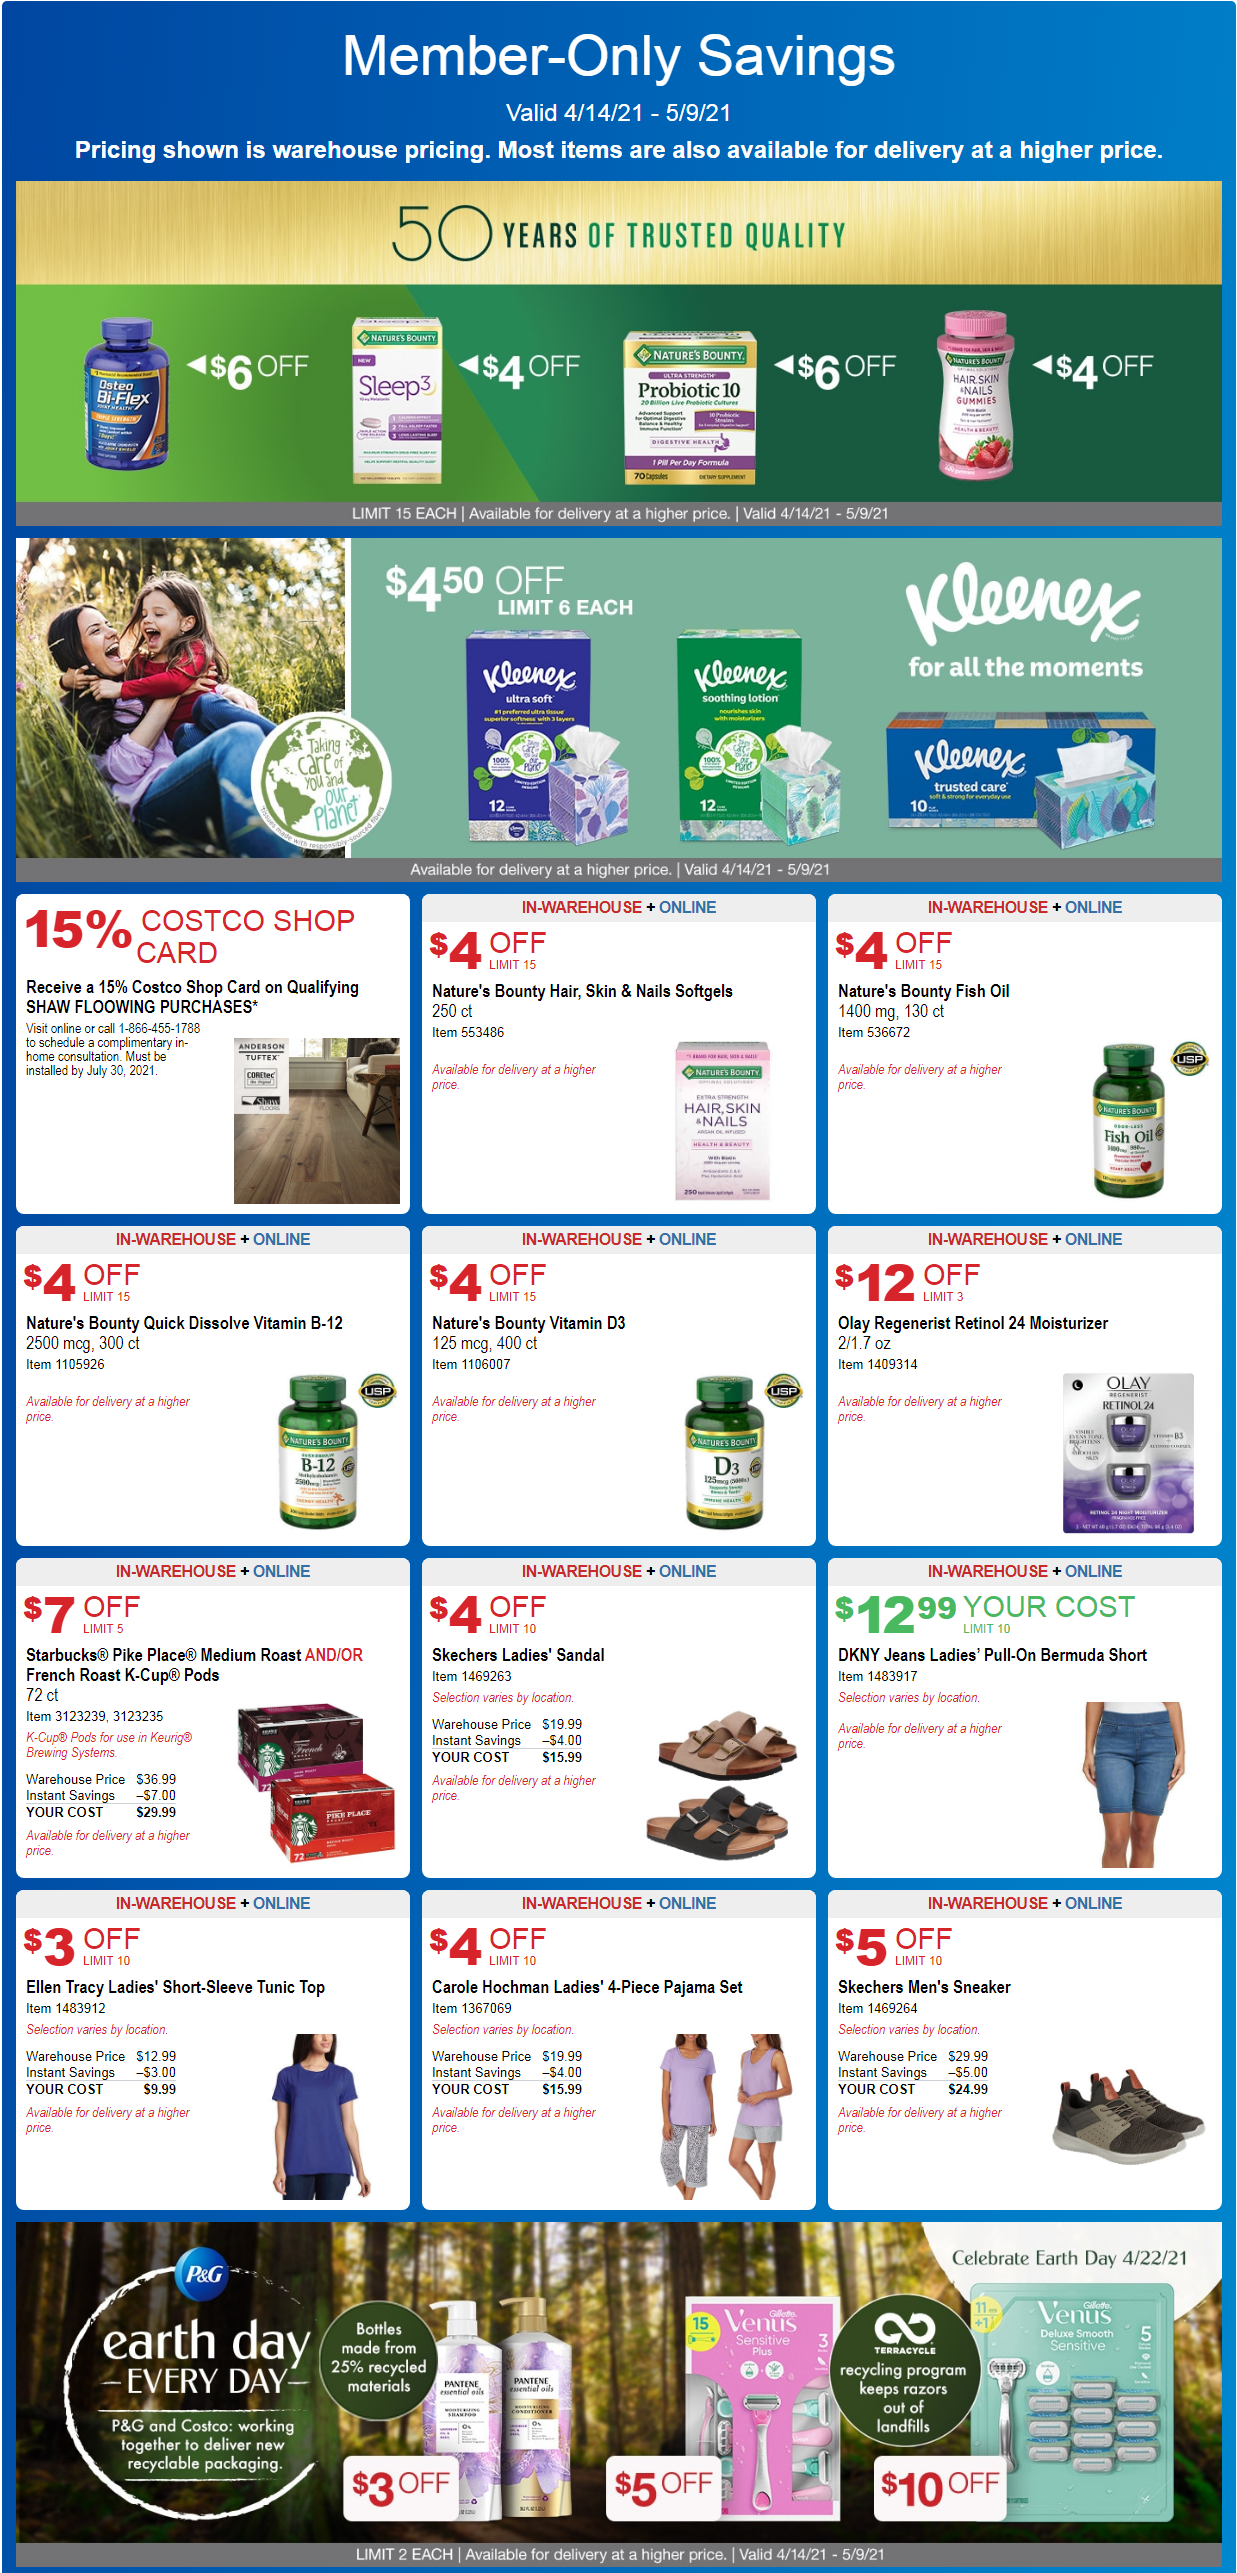 Costco Coupon Offers April 14 - May 9, 2021